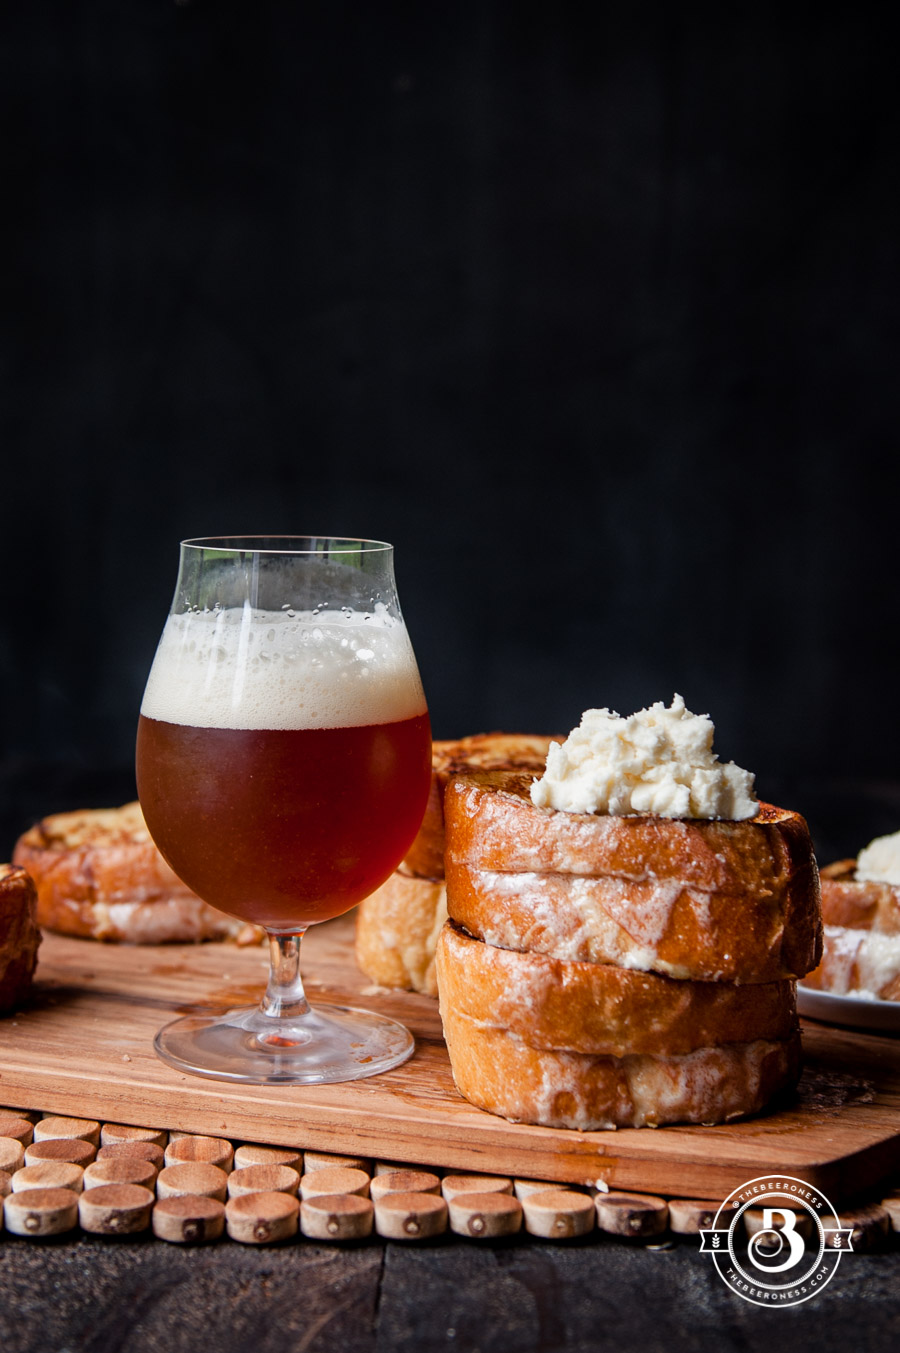 mascarpone-winter-ale-stuffed-french-toast-8